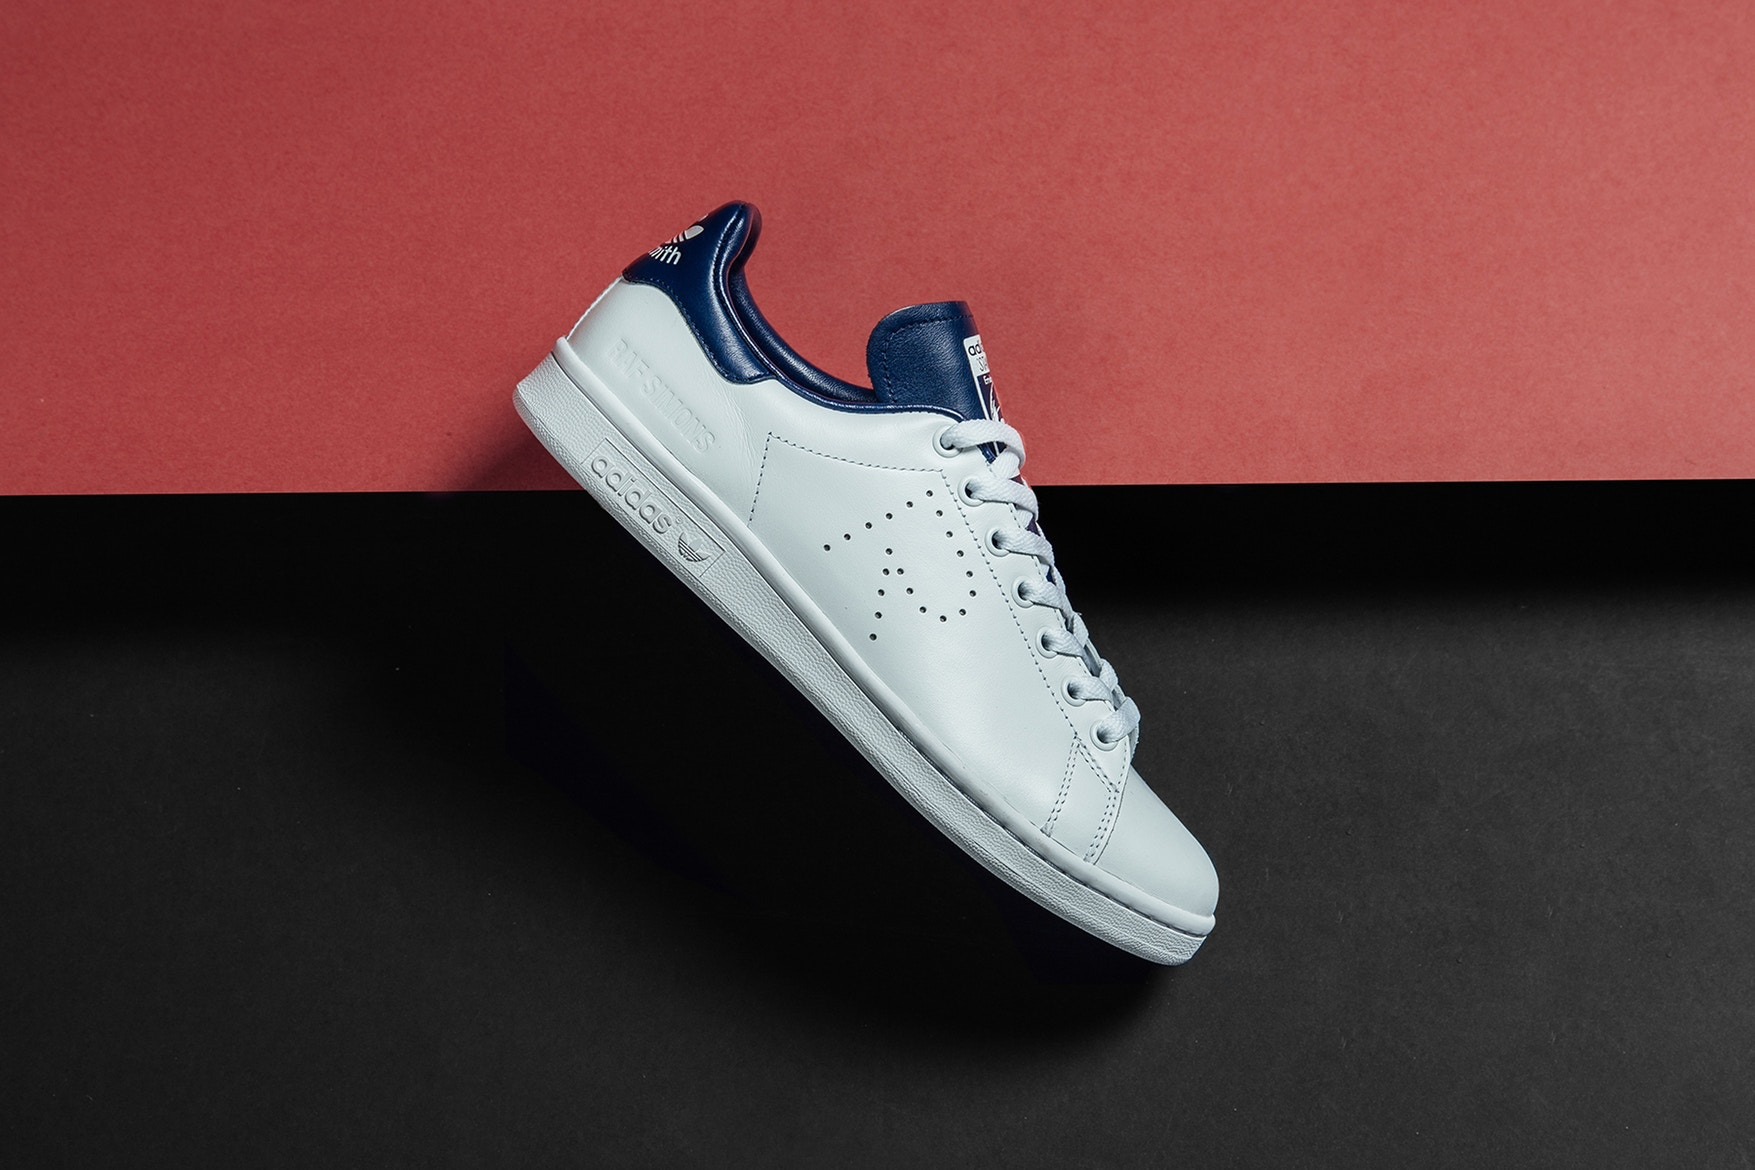 Raf Simons X Adidas Originals Spring Summer 2018 Stan Smith The Source 100 Sepatu Original New Colorways Are Available Right Now At Feature For 320 Get A Better Look Both Below